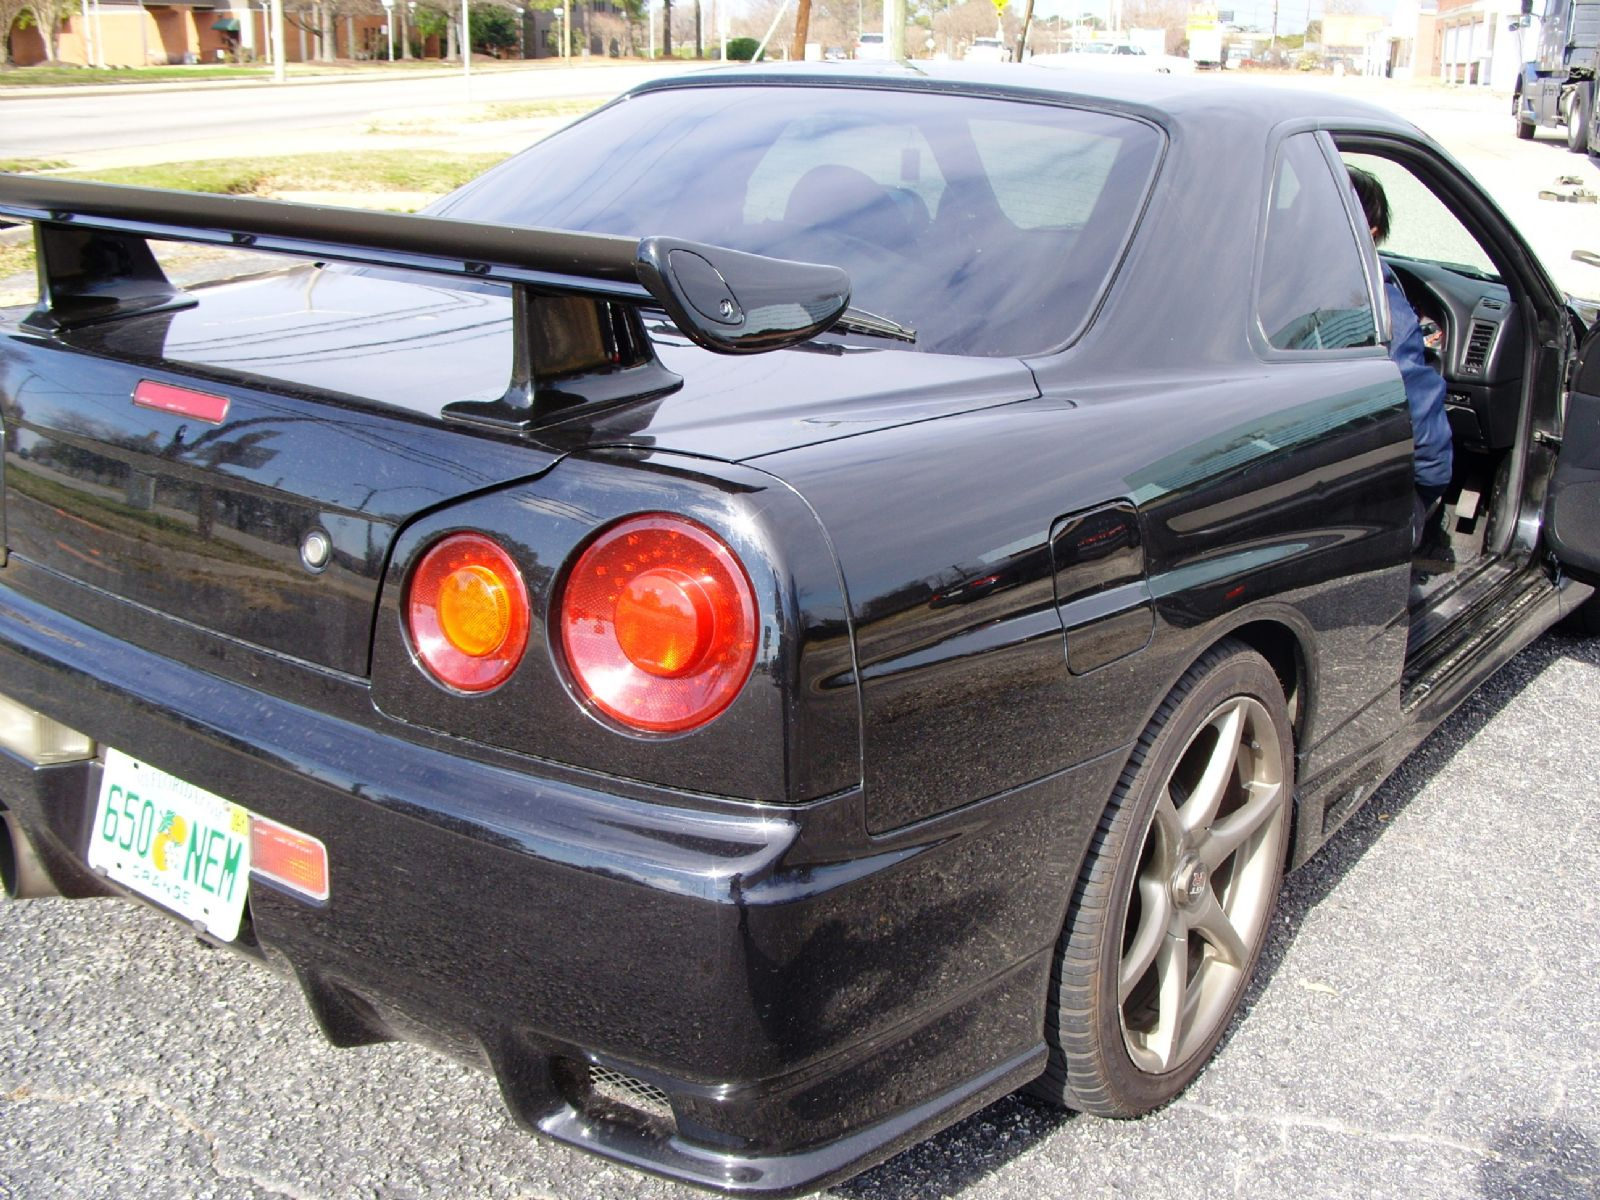 skyline wallpapers sale japanese for the gtr car nissan sports quality black pictures of